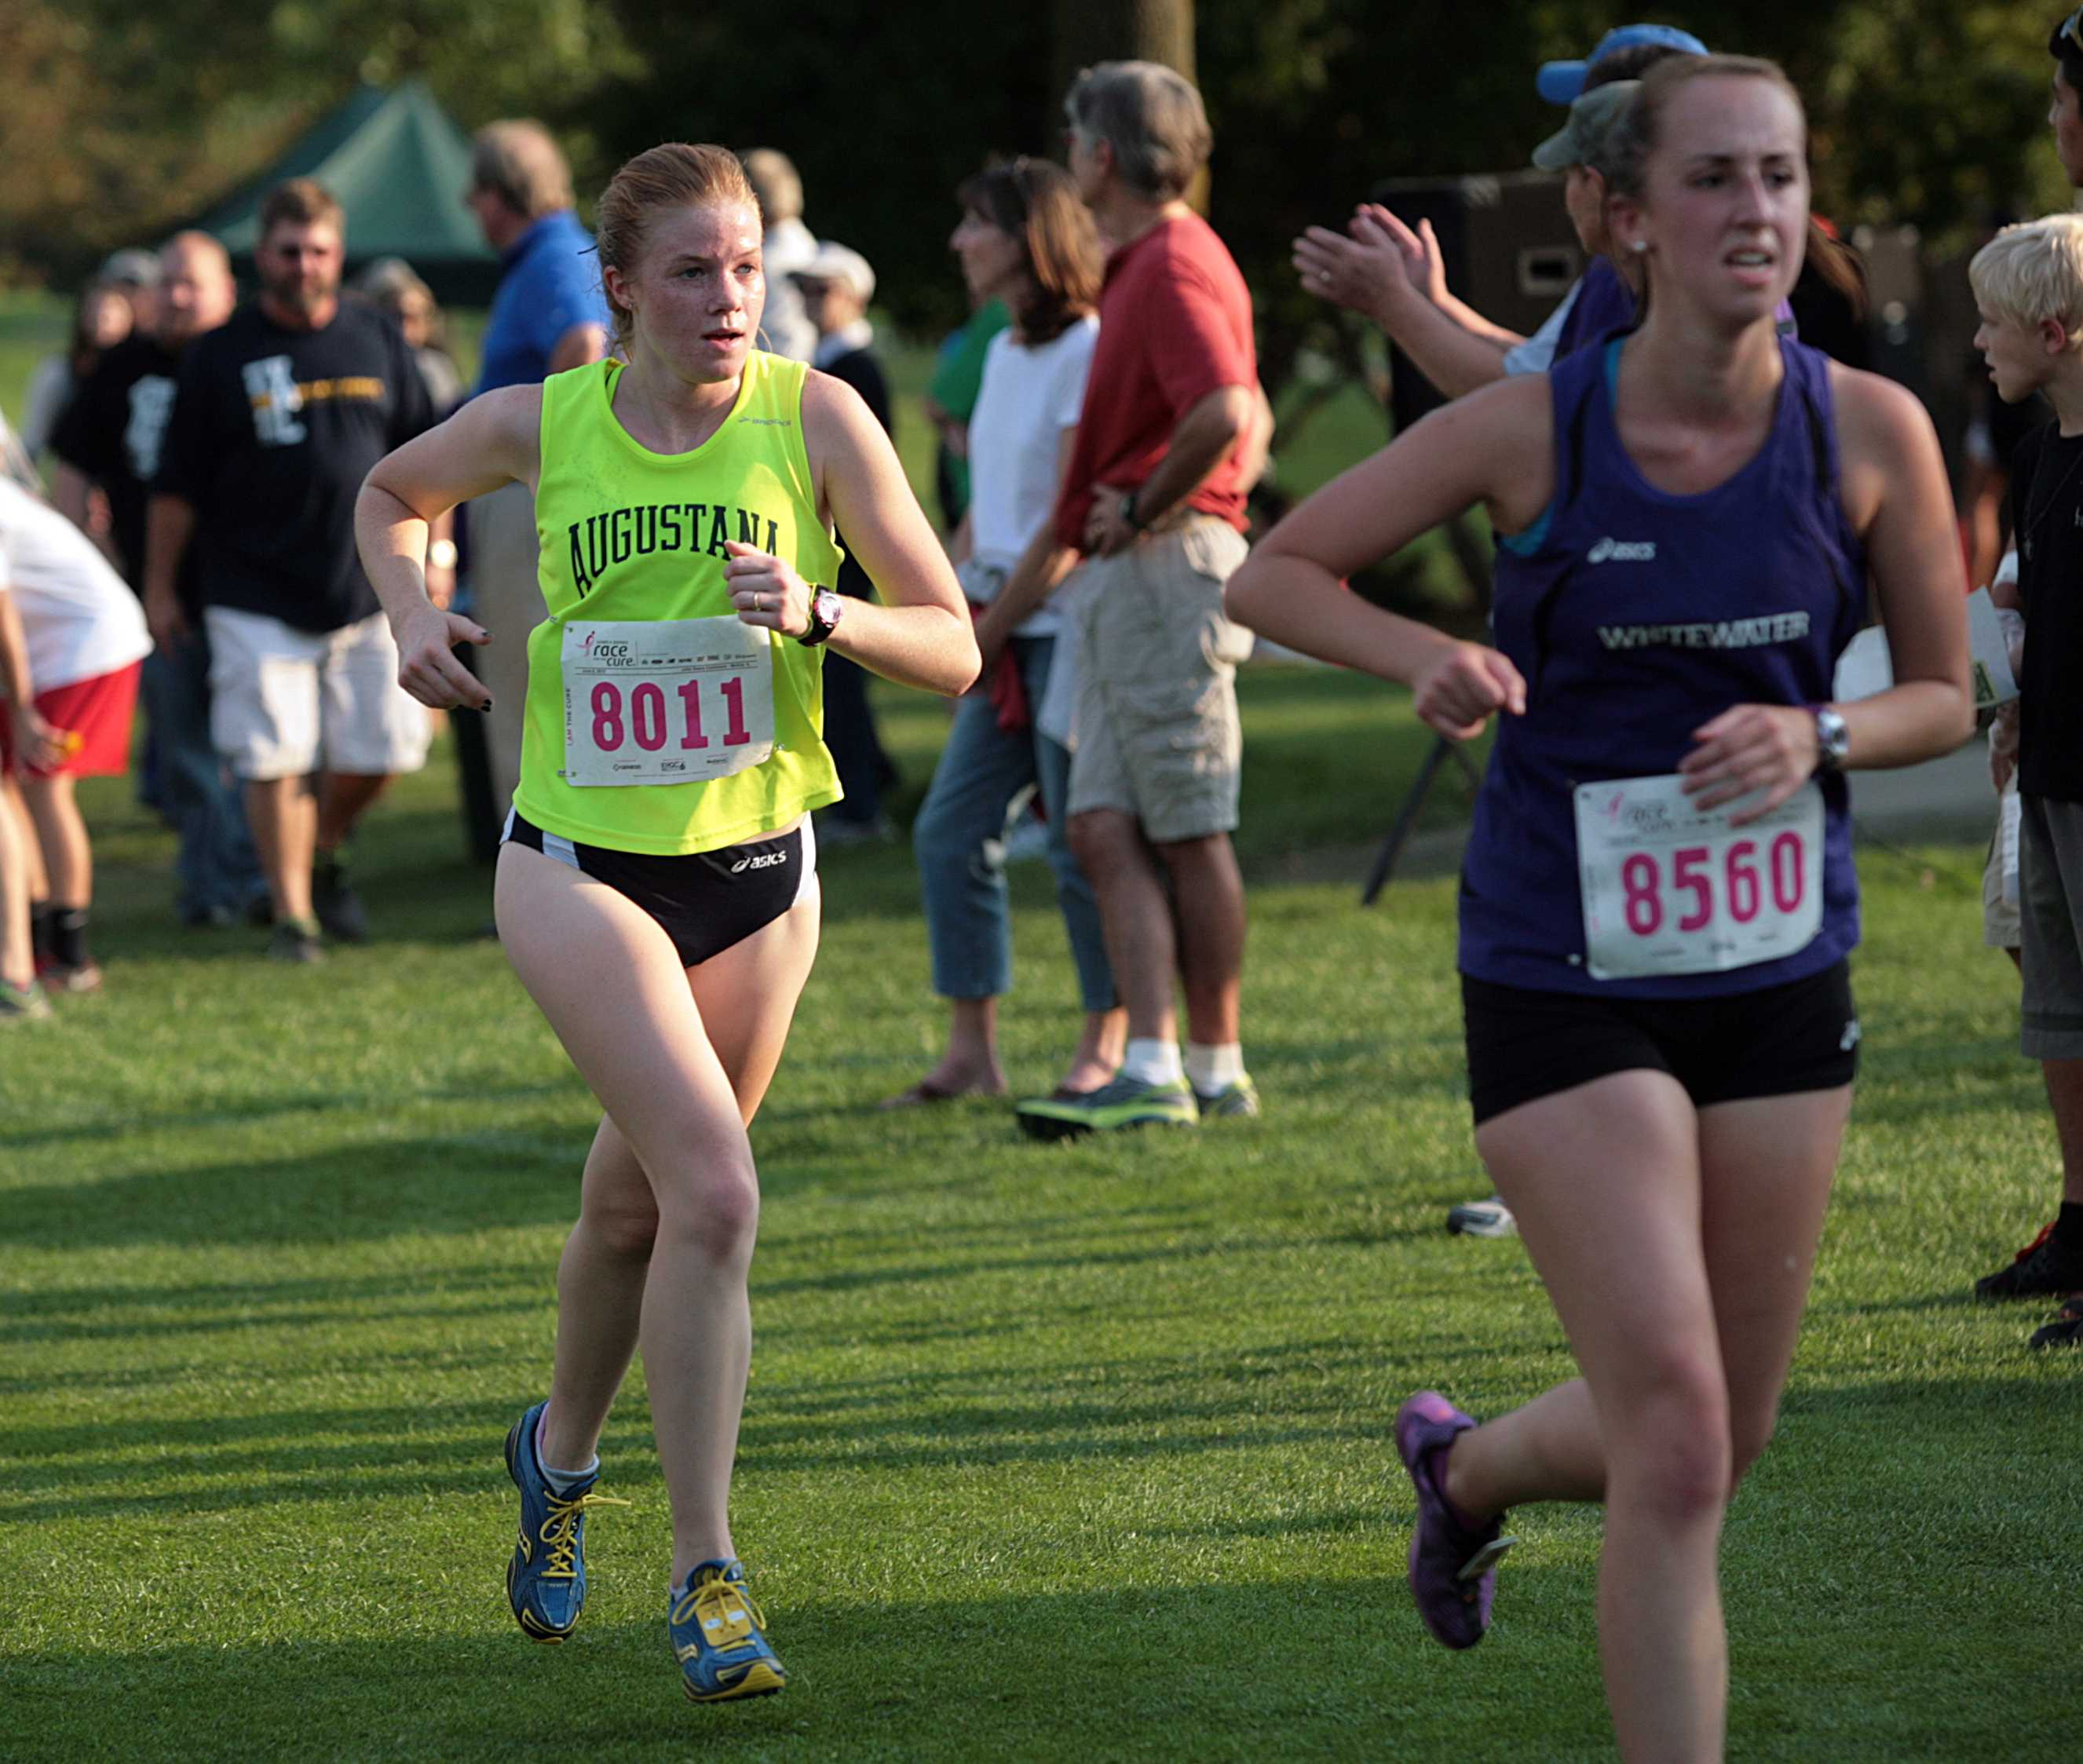 Junior Suzie Brashler runs towards the finish during Augustana's home meet, the Brissman/Lundeen Invitational, on the fields of Saukie Golf Course.  Photo by Hoang Nguyen.